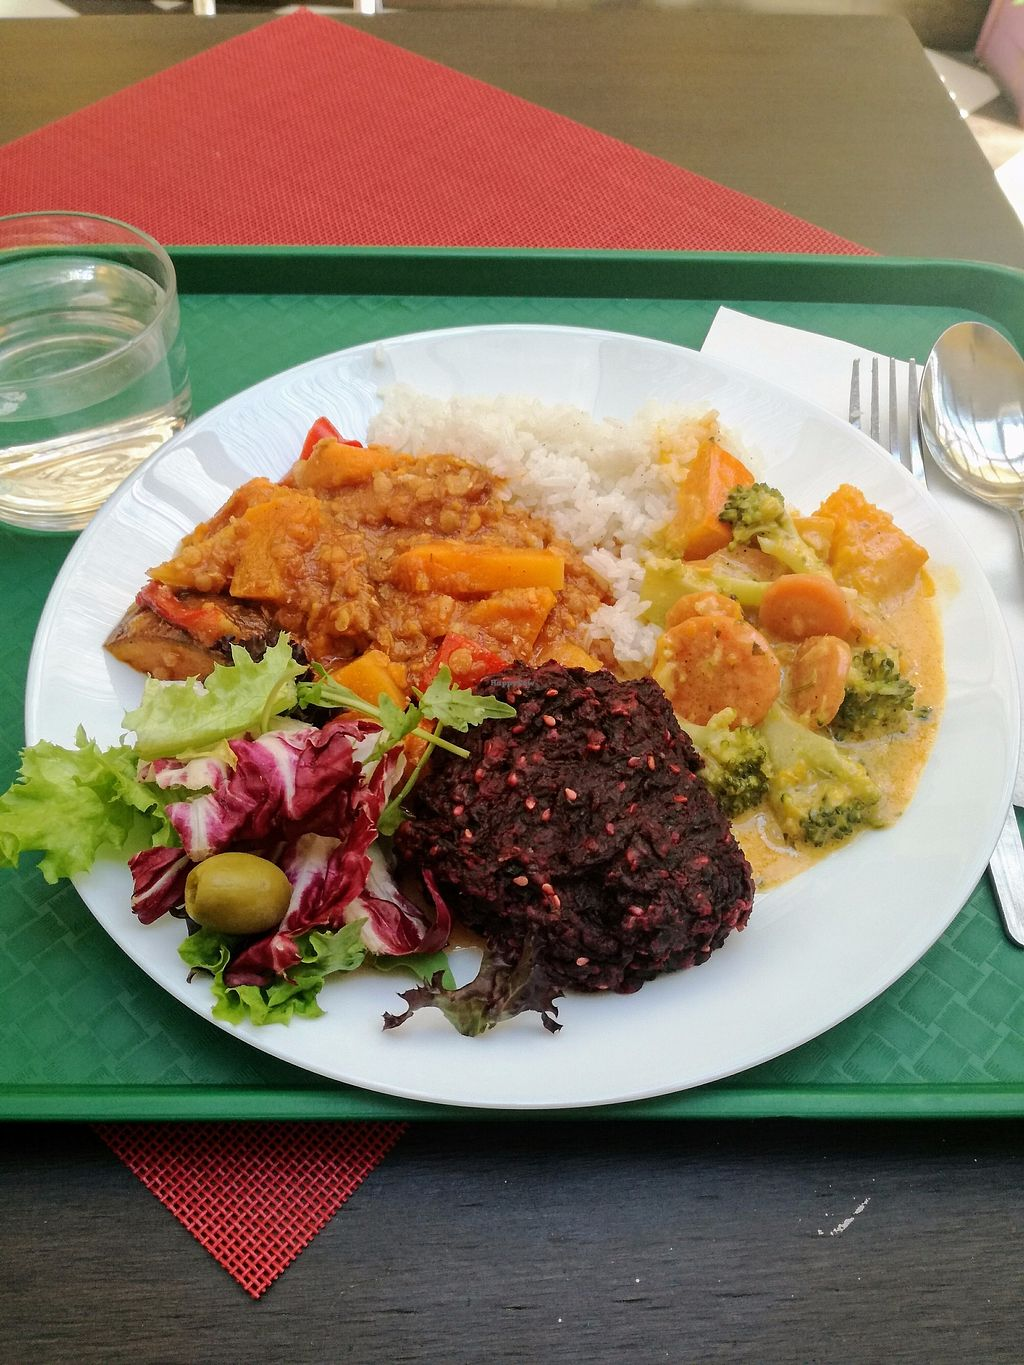 "Photo of Veggie  by <a href=""/members/profile/ZdeNka"">ZdeNka</a> <br/>daily menu - thai veggie curry, some sweet potato daal I think, beet patty, rice and fresh salad <br/> December 2, 2017  - <a href='/contact/abuse/image/33875/331465'>Report</a>"